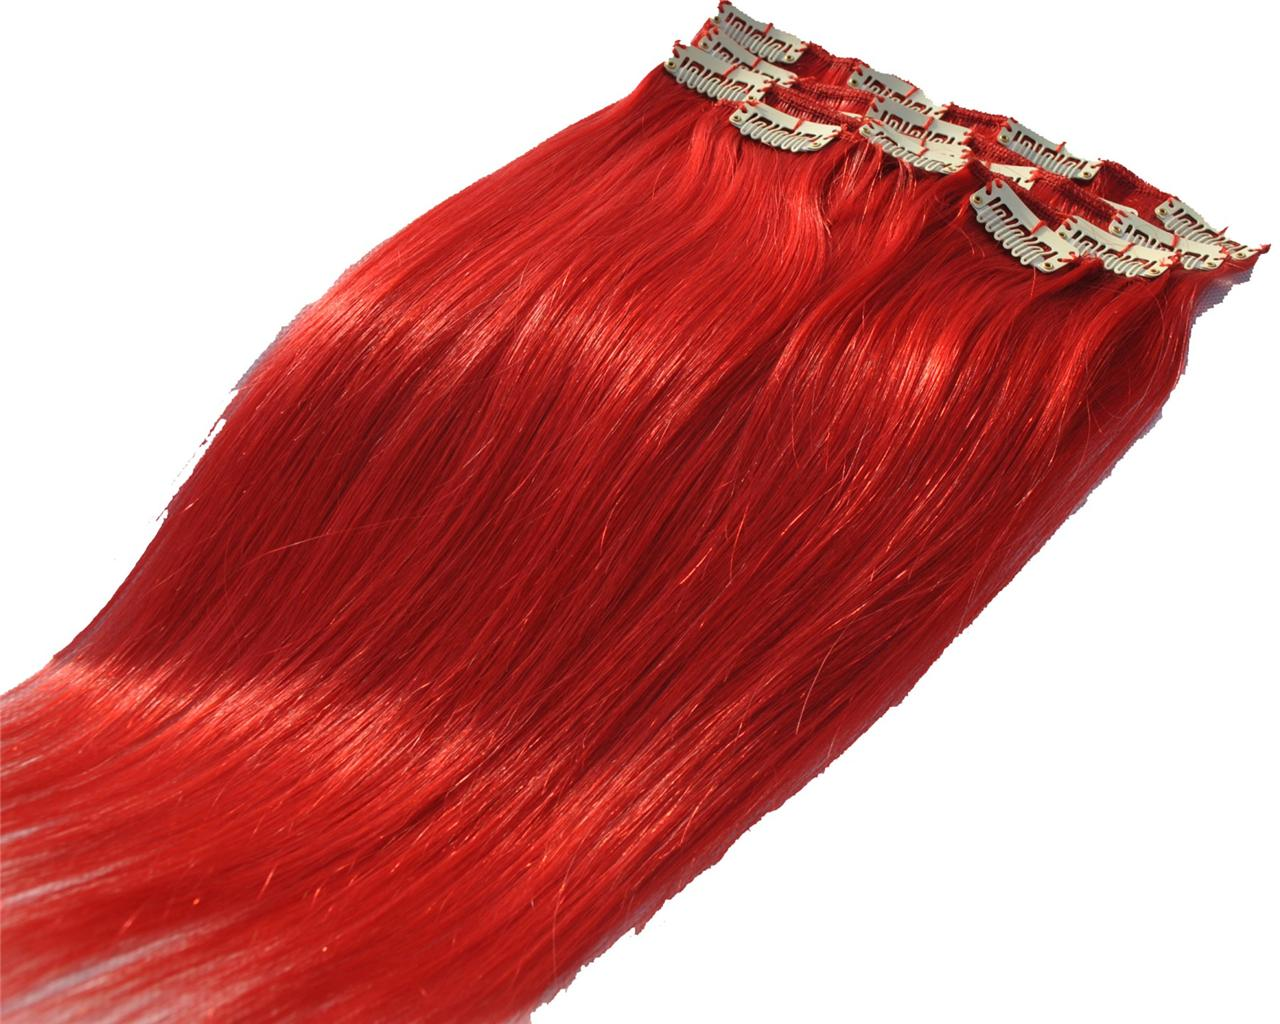 16-Clip-in-on-real-human-hair-extensions-remy-full-head-red